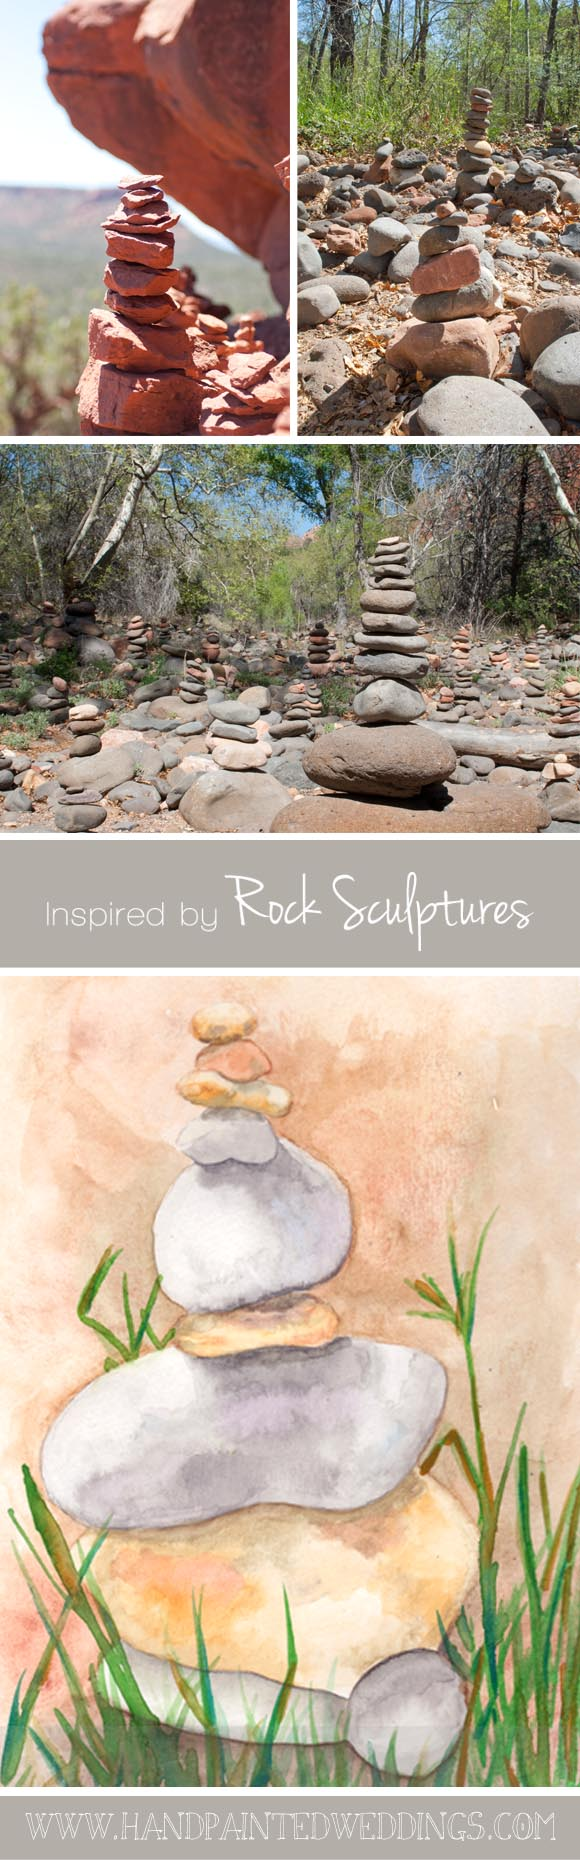 Inspired by Rock Sculptures